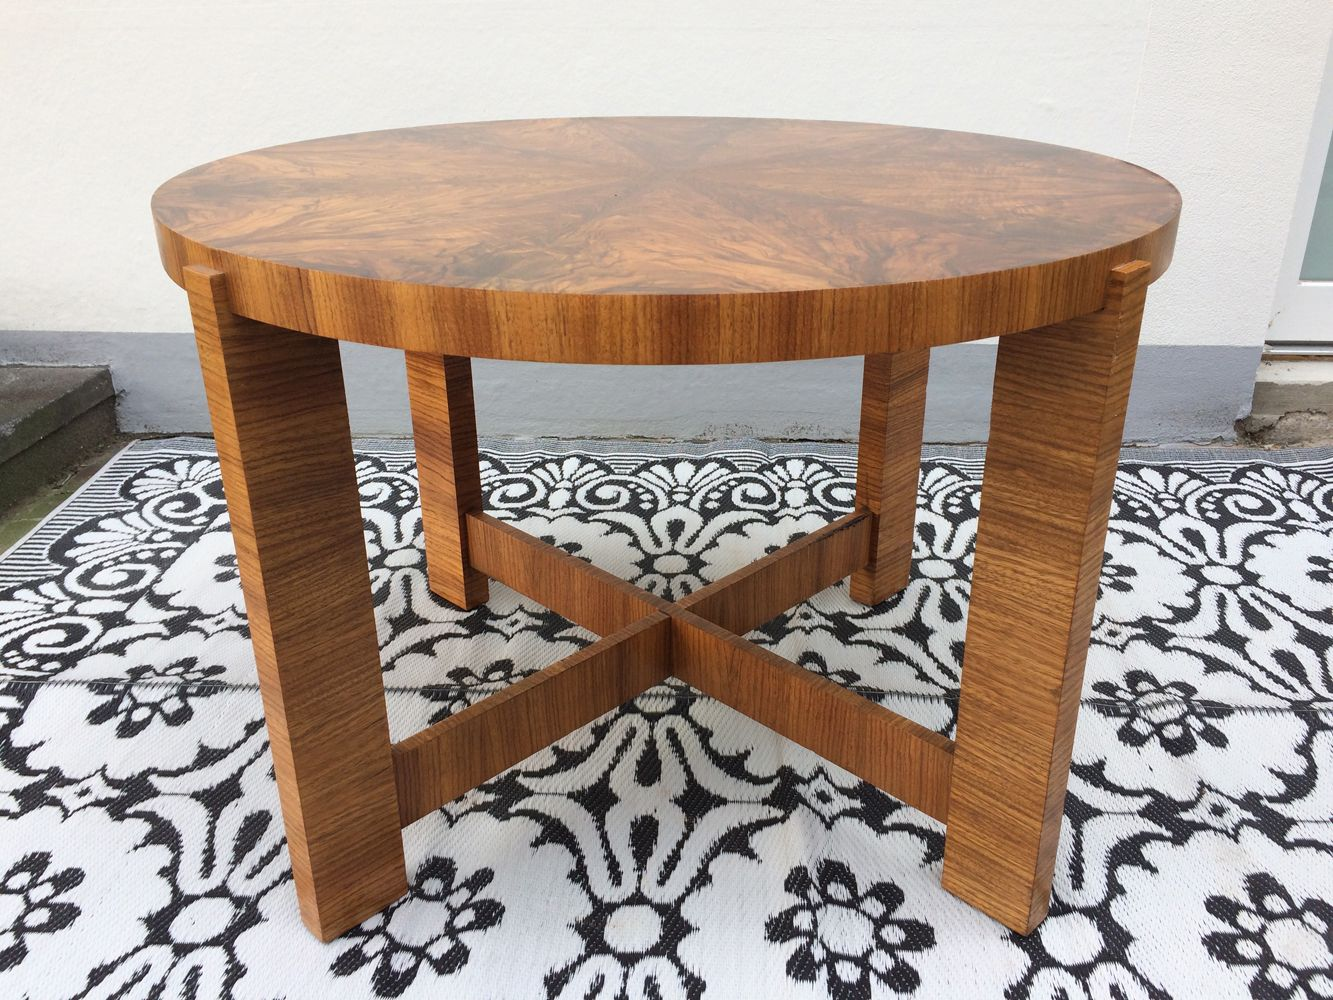 Round Art Deco Dining Table for sale at Pamono